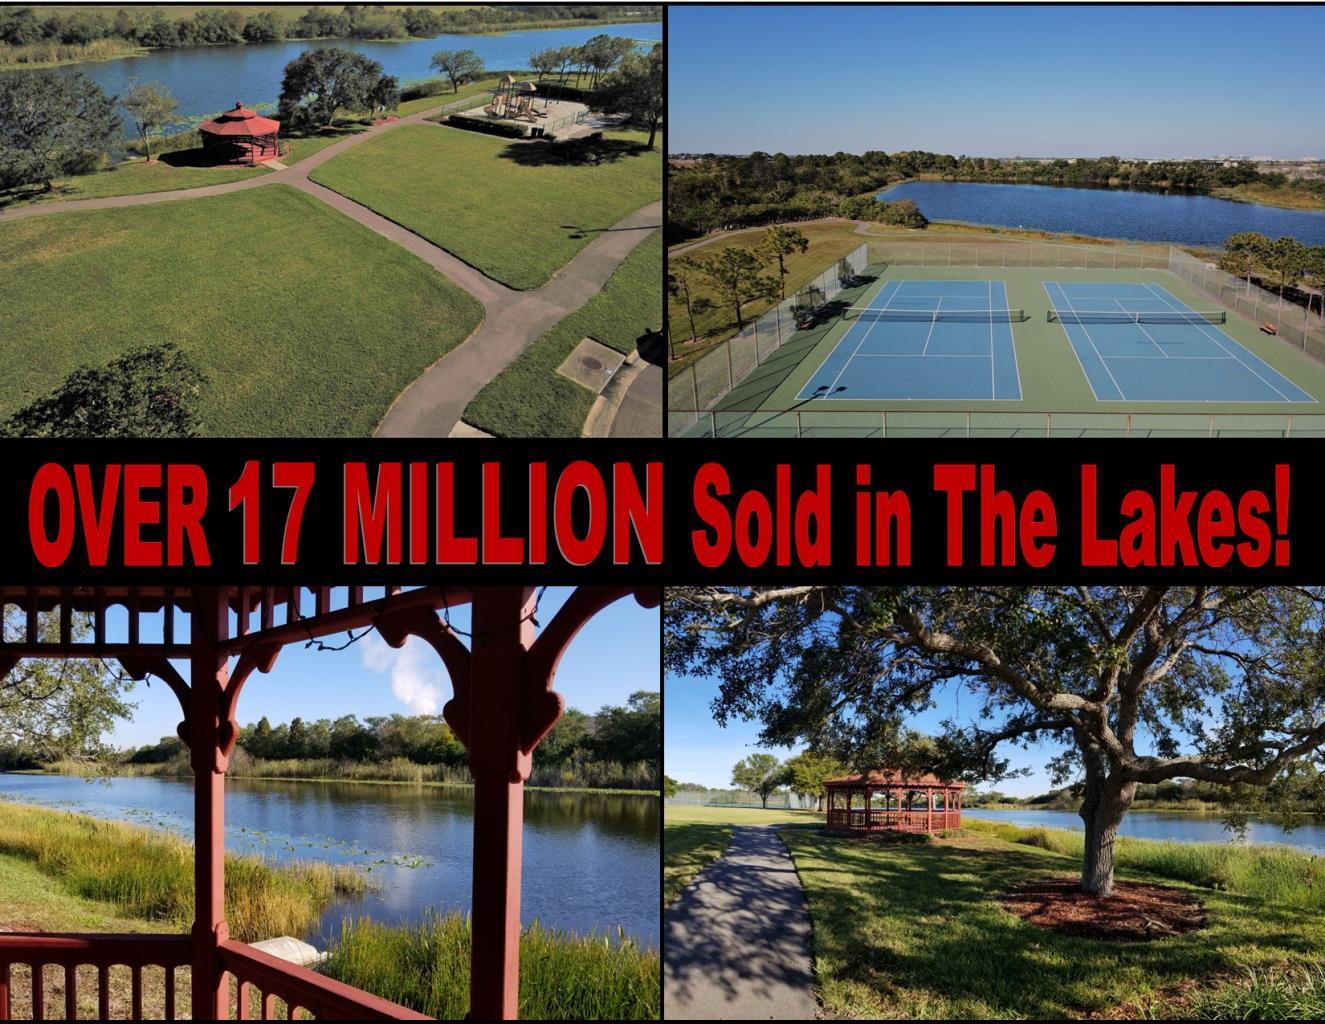 Over $17 Million Sold in Real Estate in The Lakes Clearwater Florida. Photos of Gazebo, tennis courts, and walking trail for Waterside at The Lakes